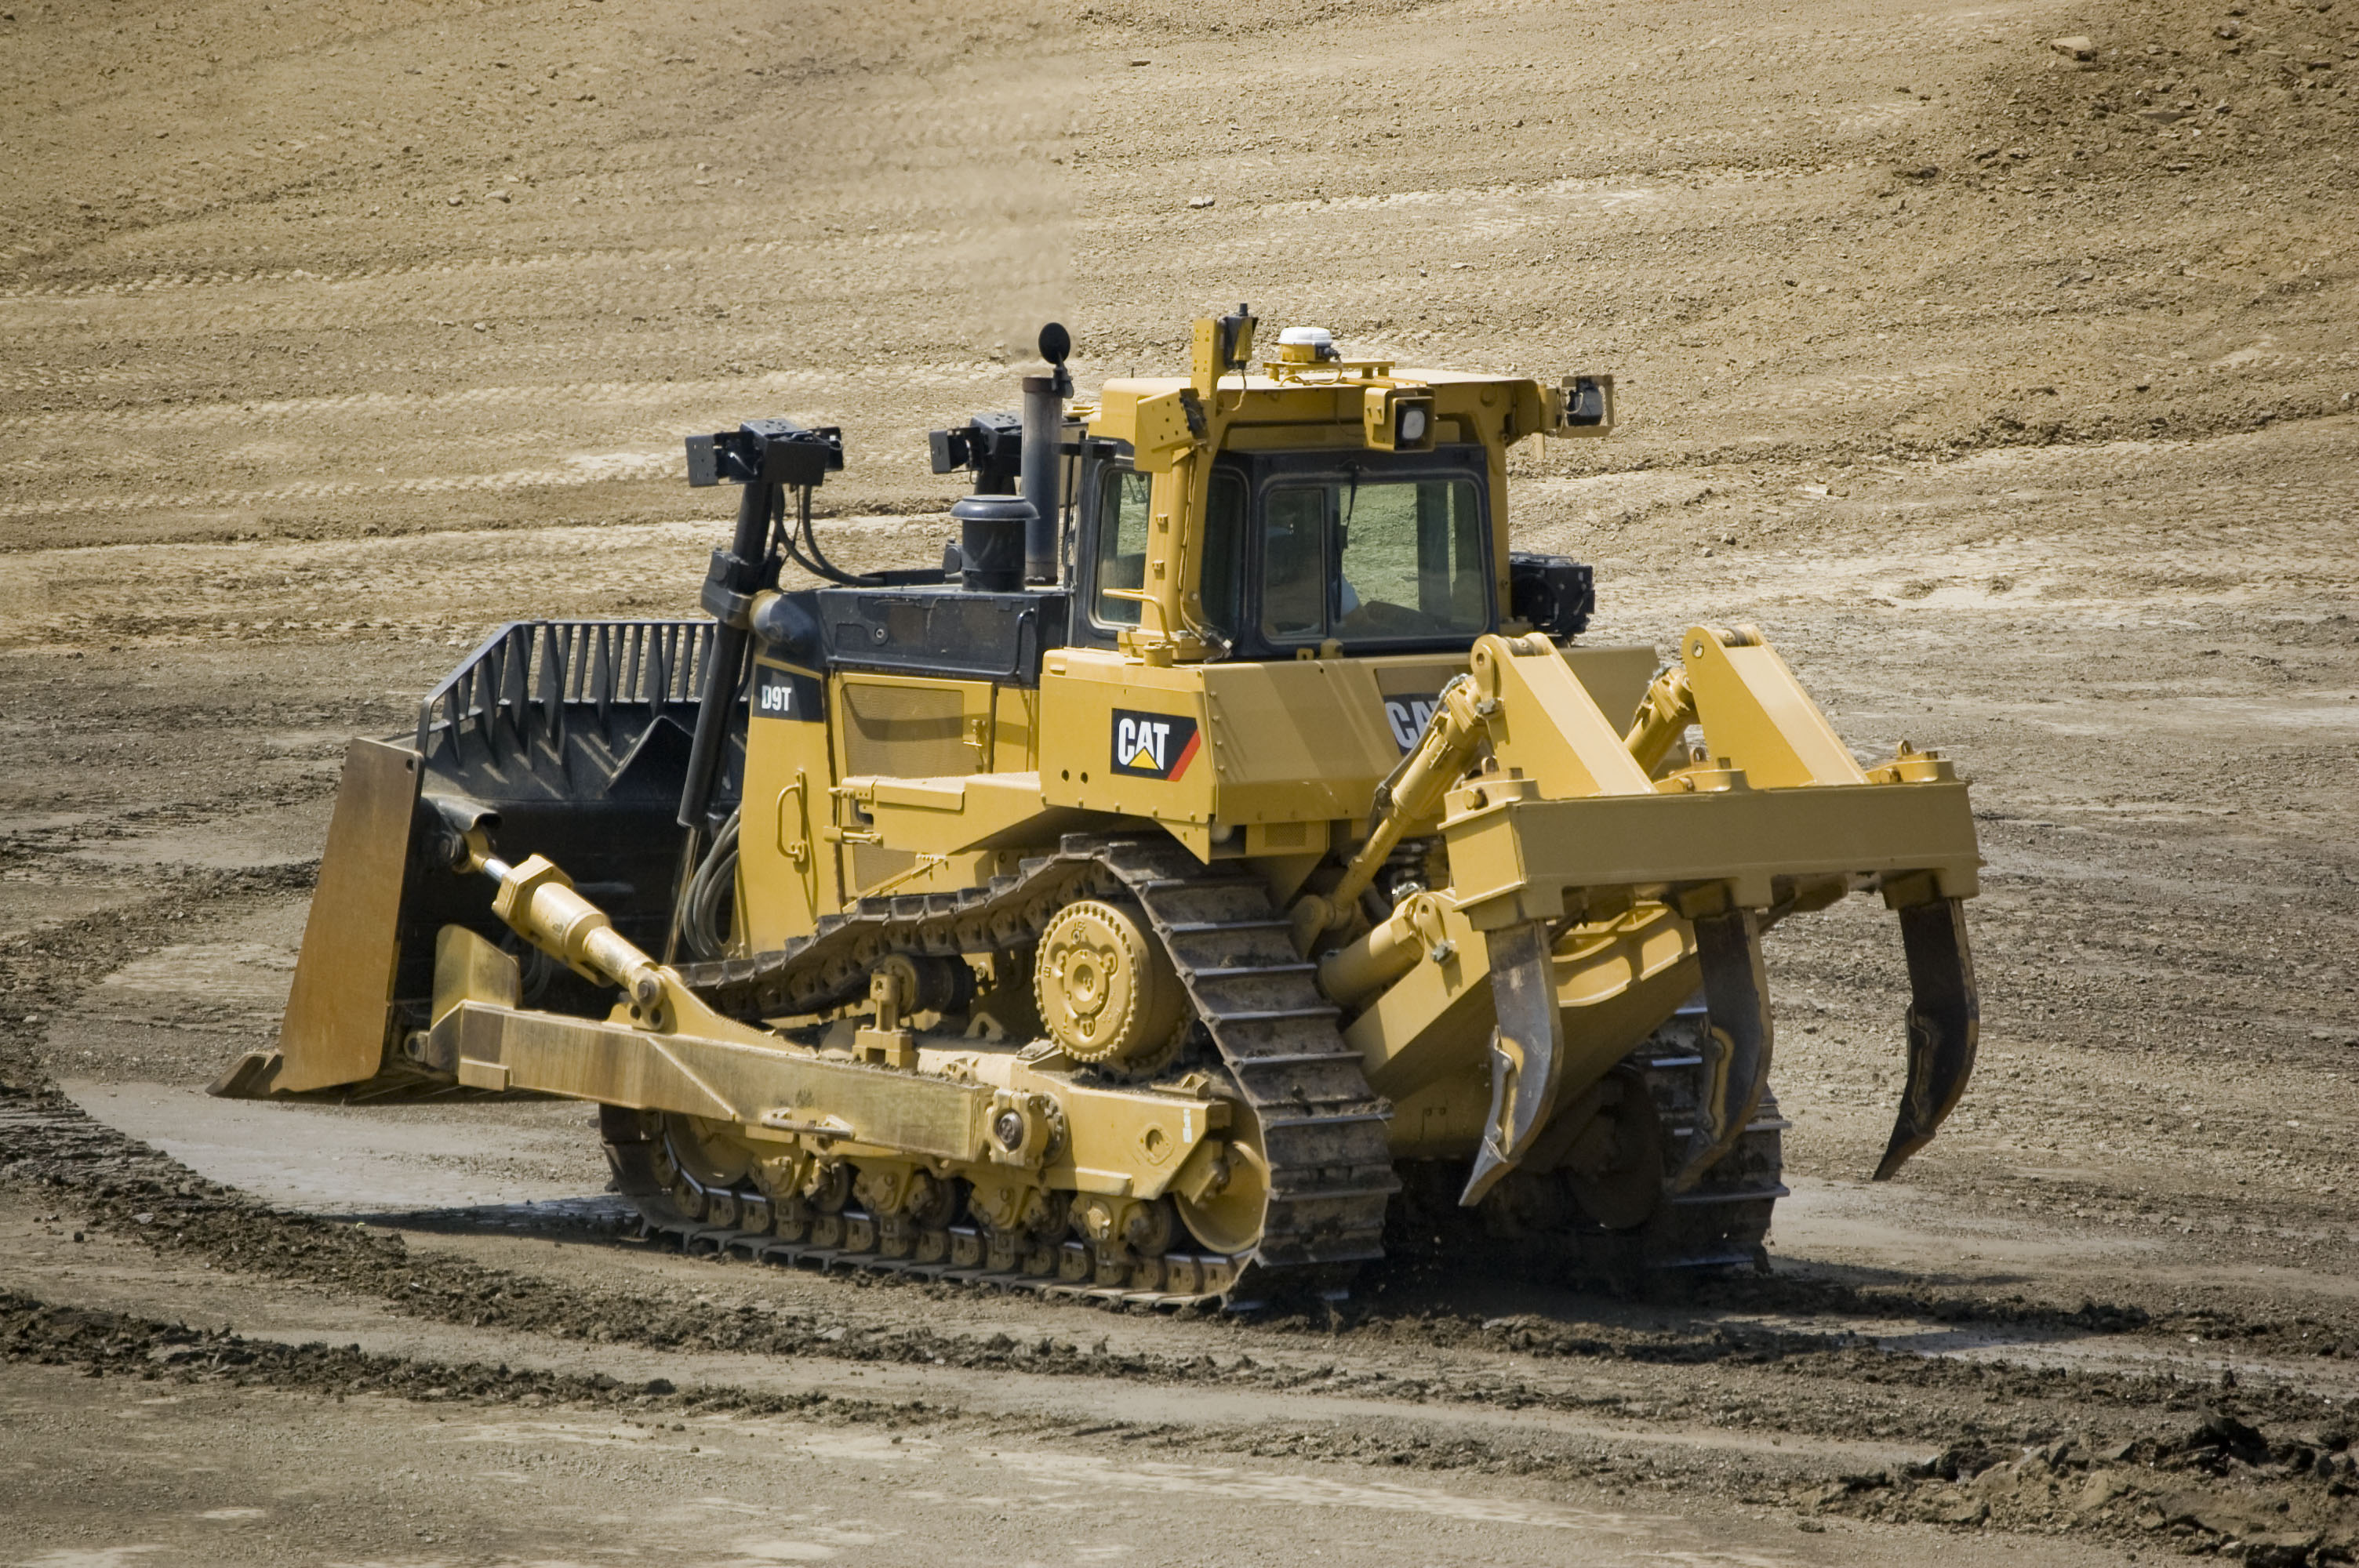 Caterpillar d9 photo - 5